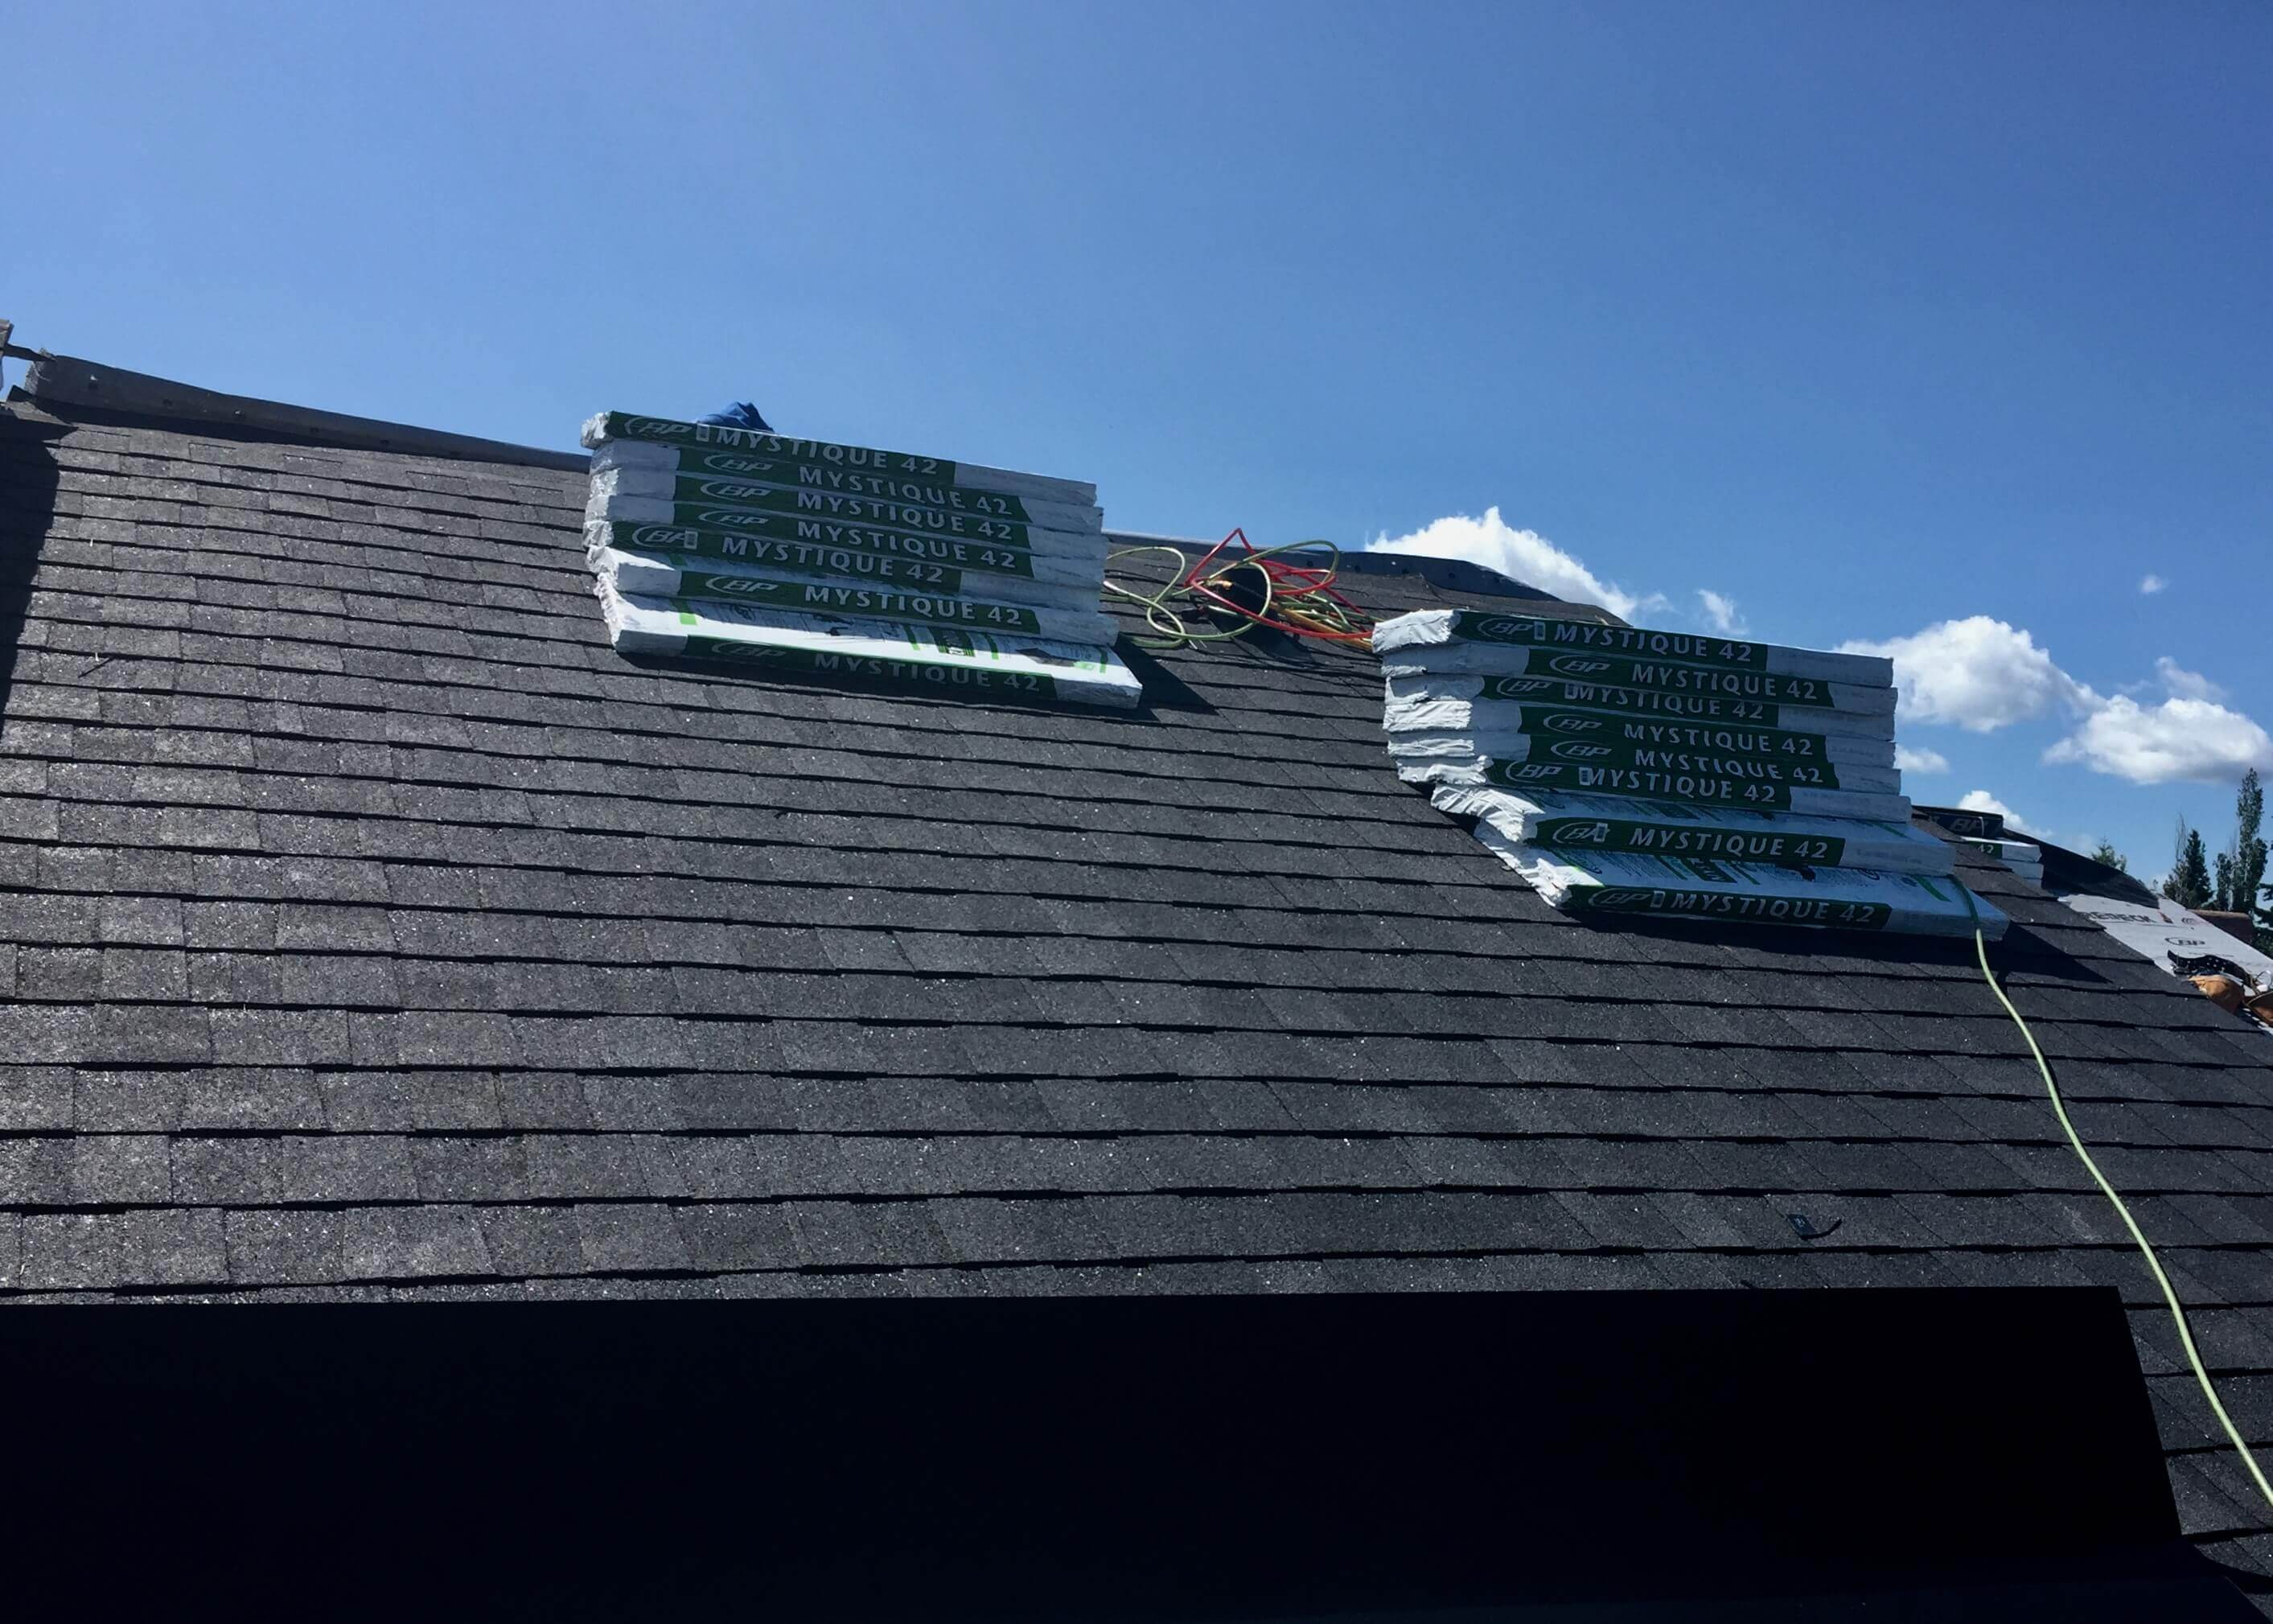 asphalt-roofing-shingle-Edmonton.jpg